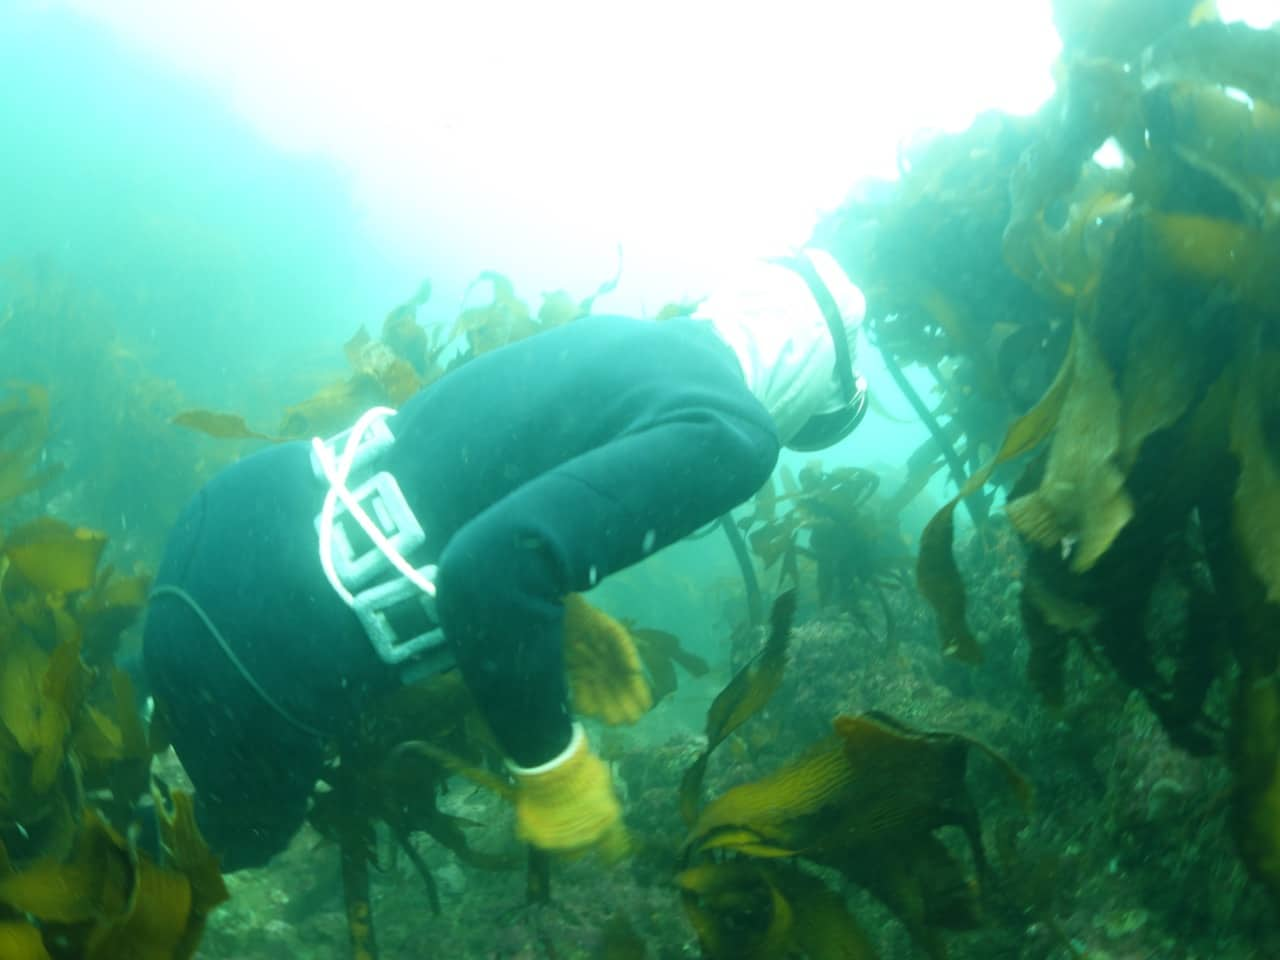 The Ama are heavily weighted for diving in less than 15m making it easy to crawl along the sea floor.